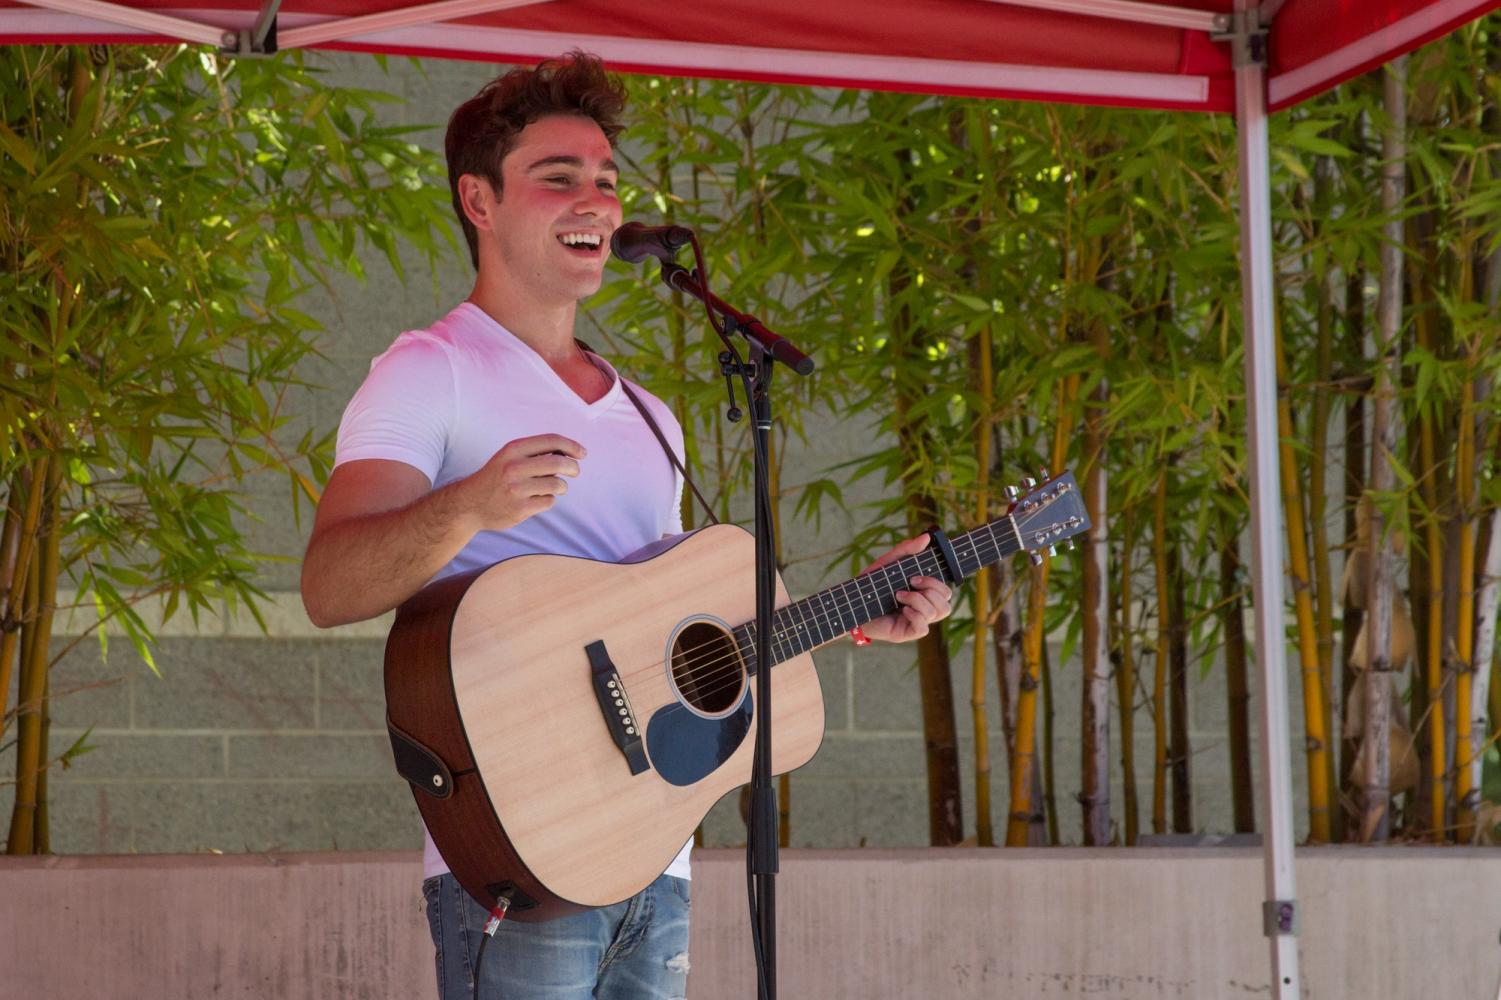 Matt Anspach, 20, performs an acoustic set during the USU Noontime Concert on Sept. 5. Photo credit: Serena Christie